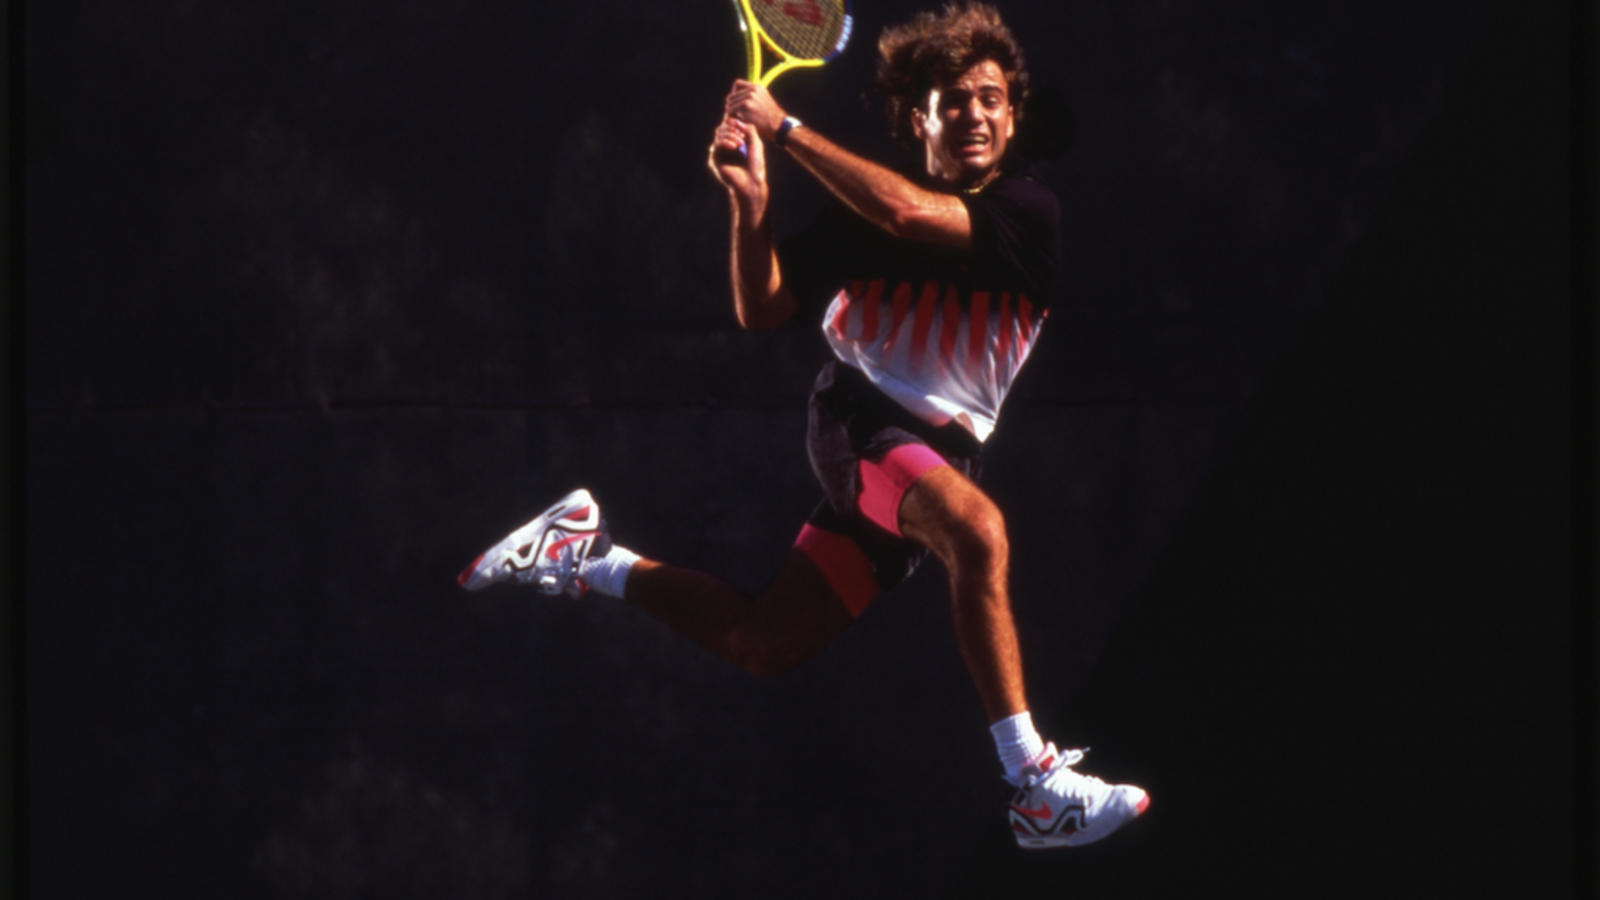 Nike News - Tennis Icon Andre Agassi Rejoins Nike